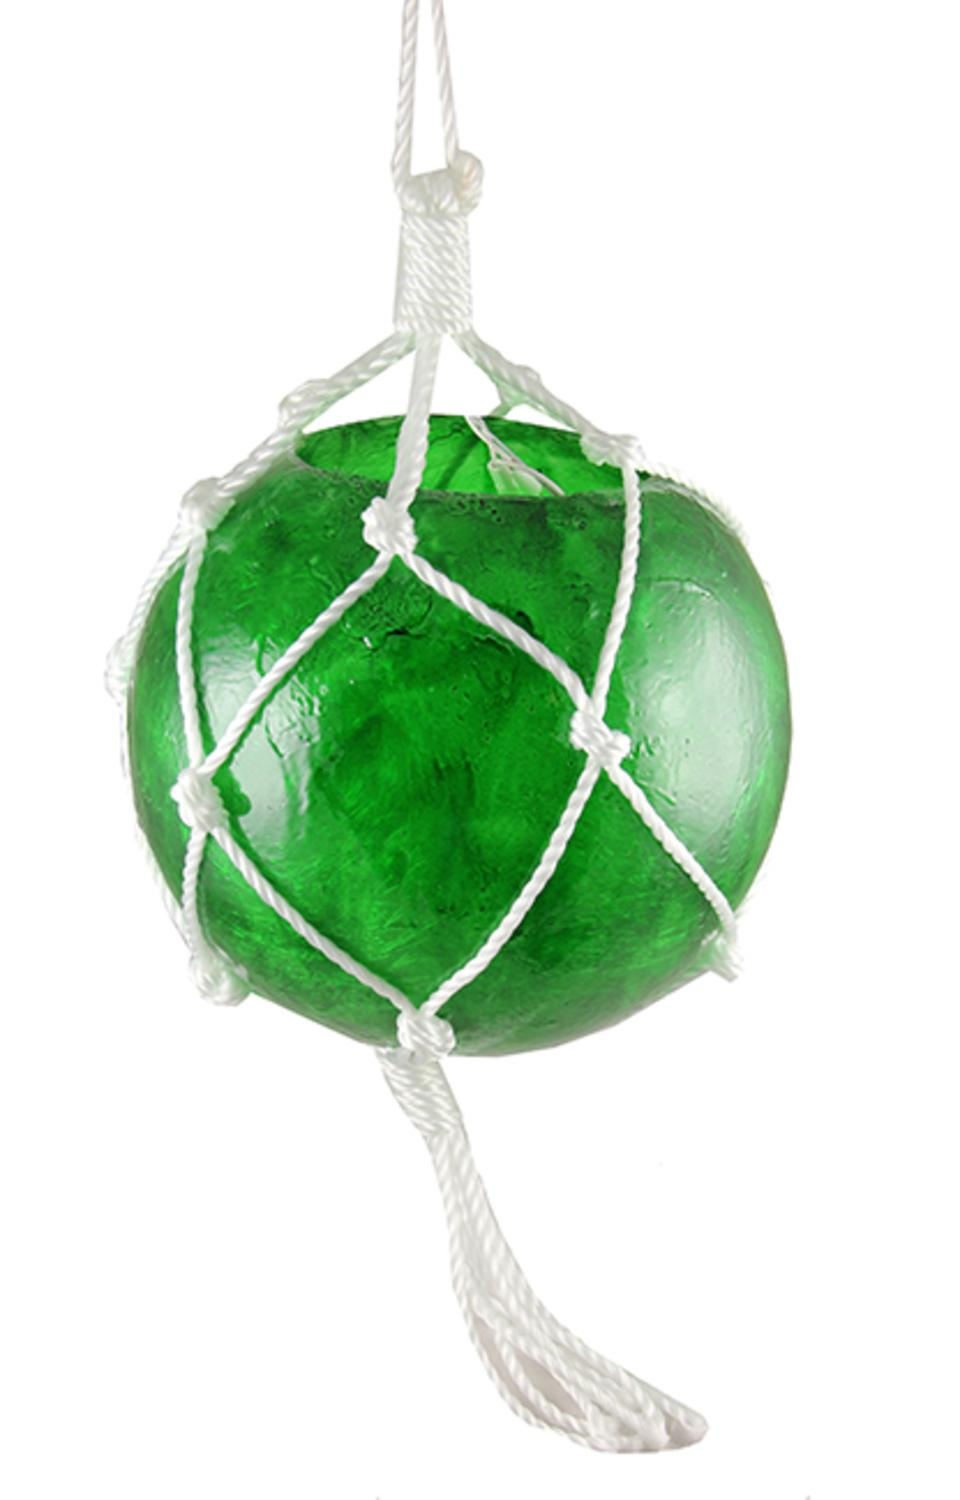 14 4 lighted roped green ball outdoor christmas for 160 net christmas decoration lights clear